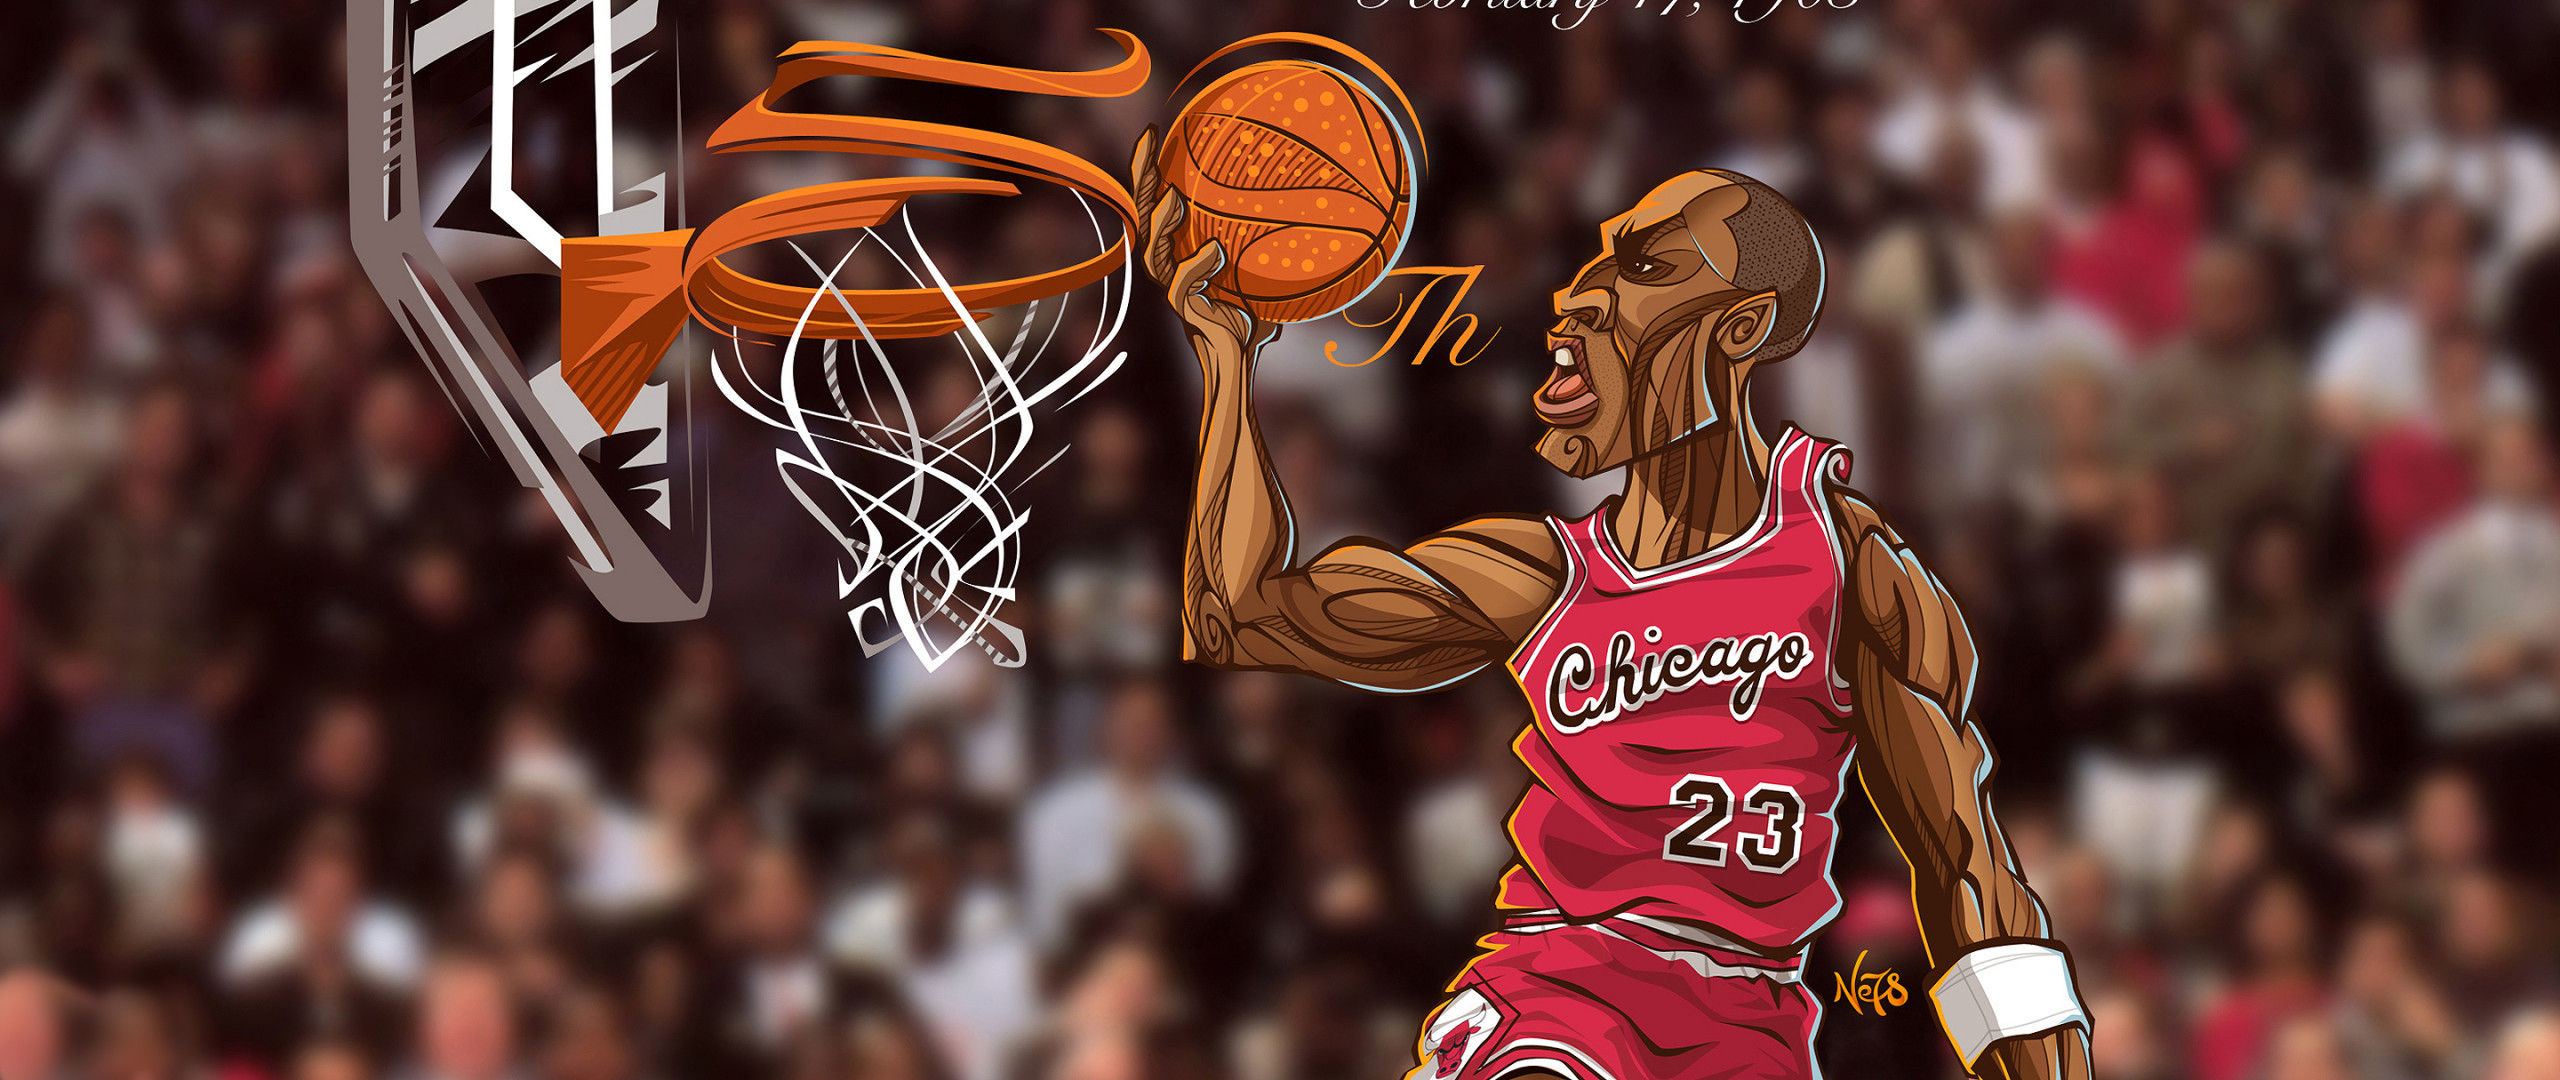 2560x1080 Preview wallpaper michael jordan, chicago bulls, sports, basketball, nba